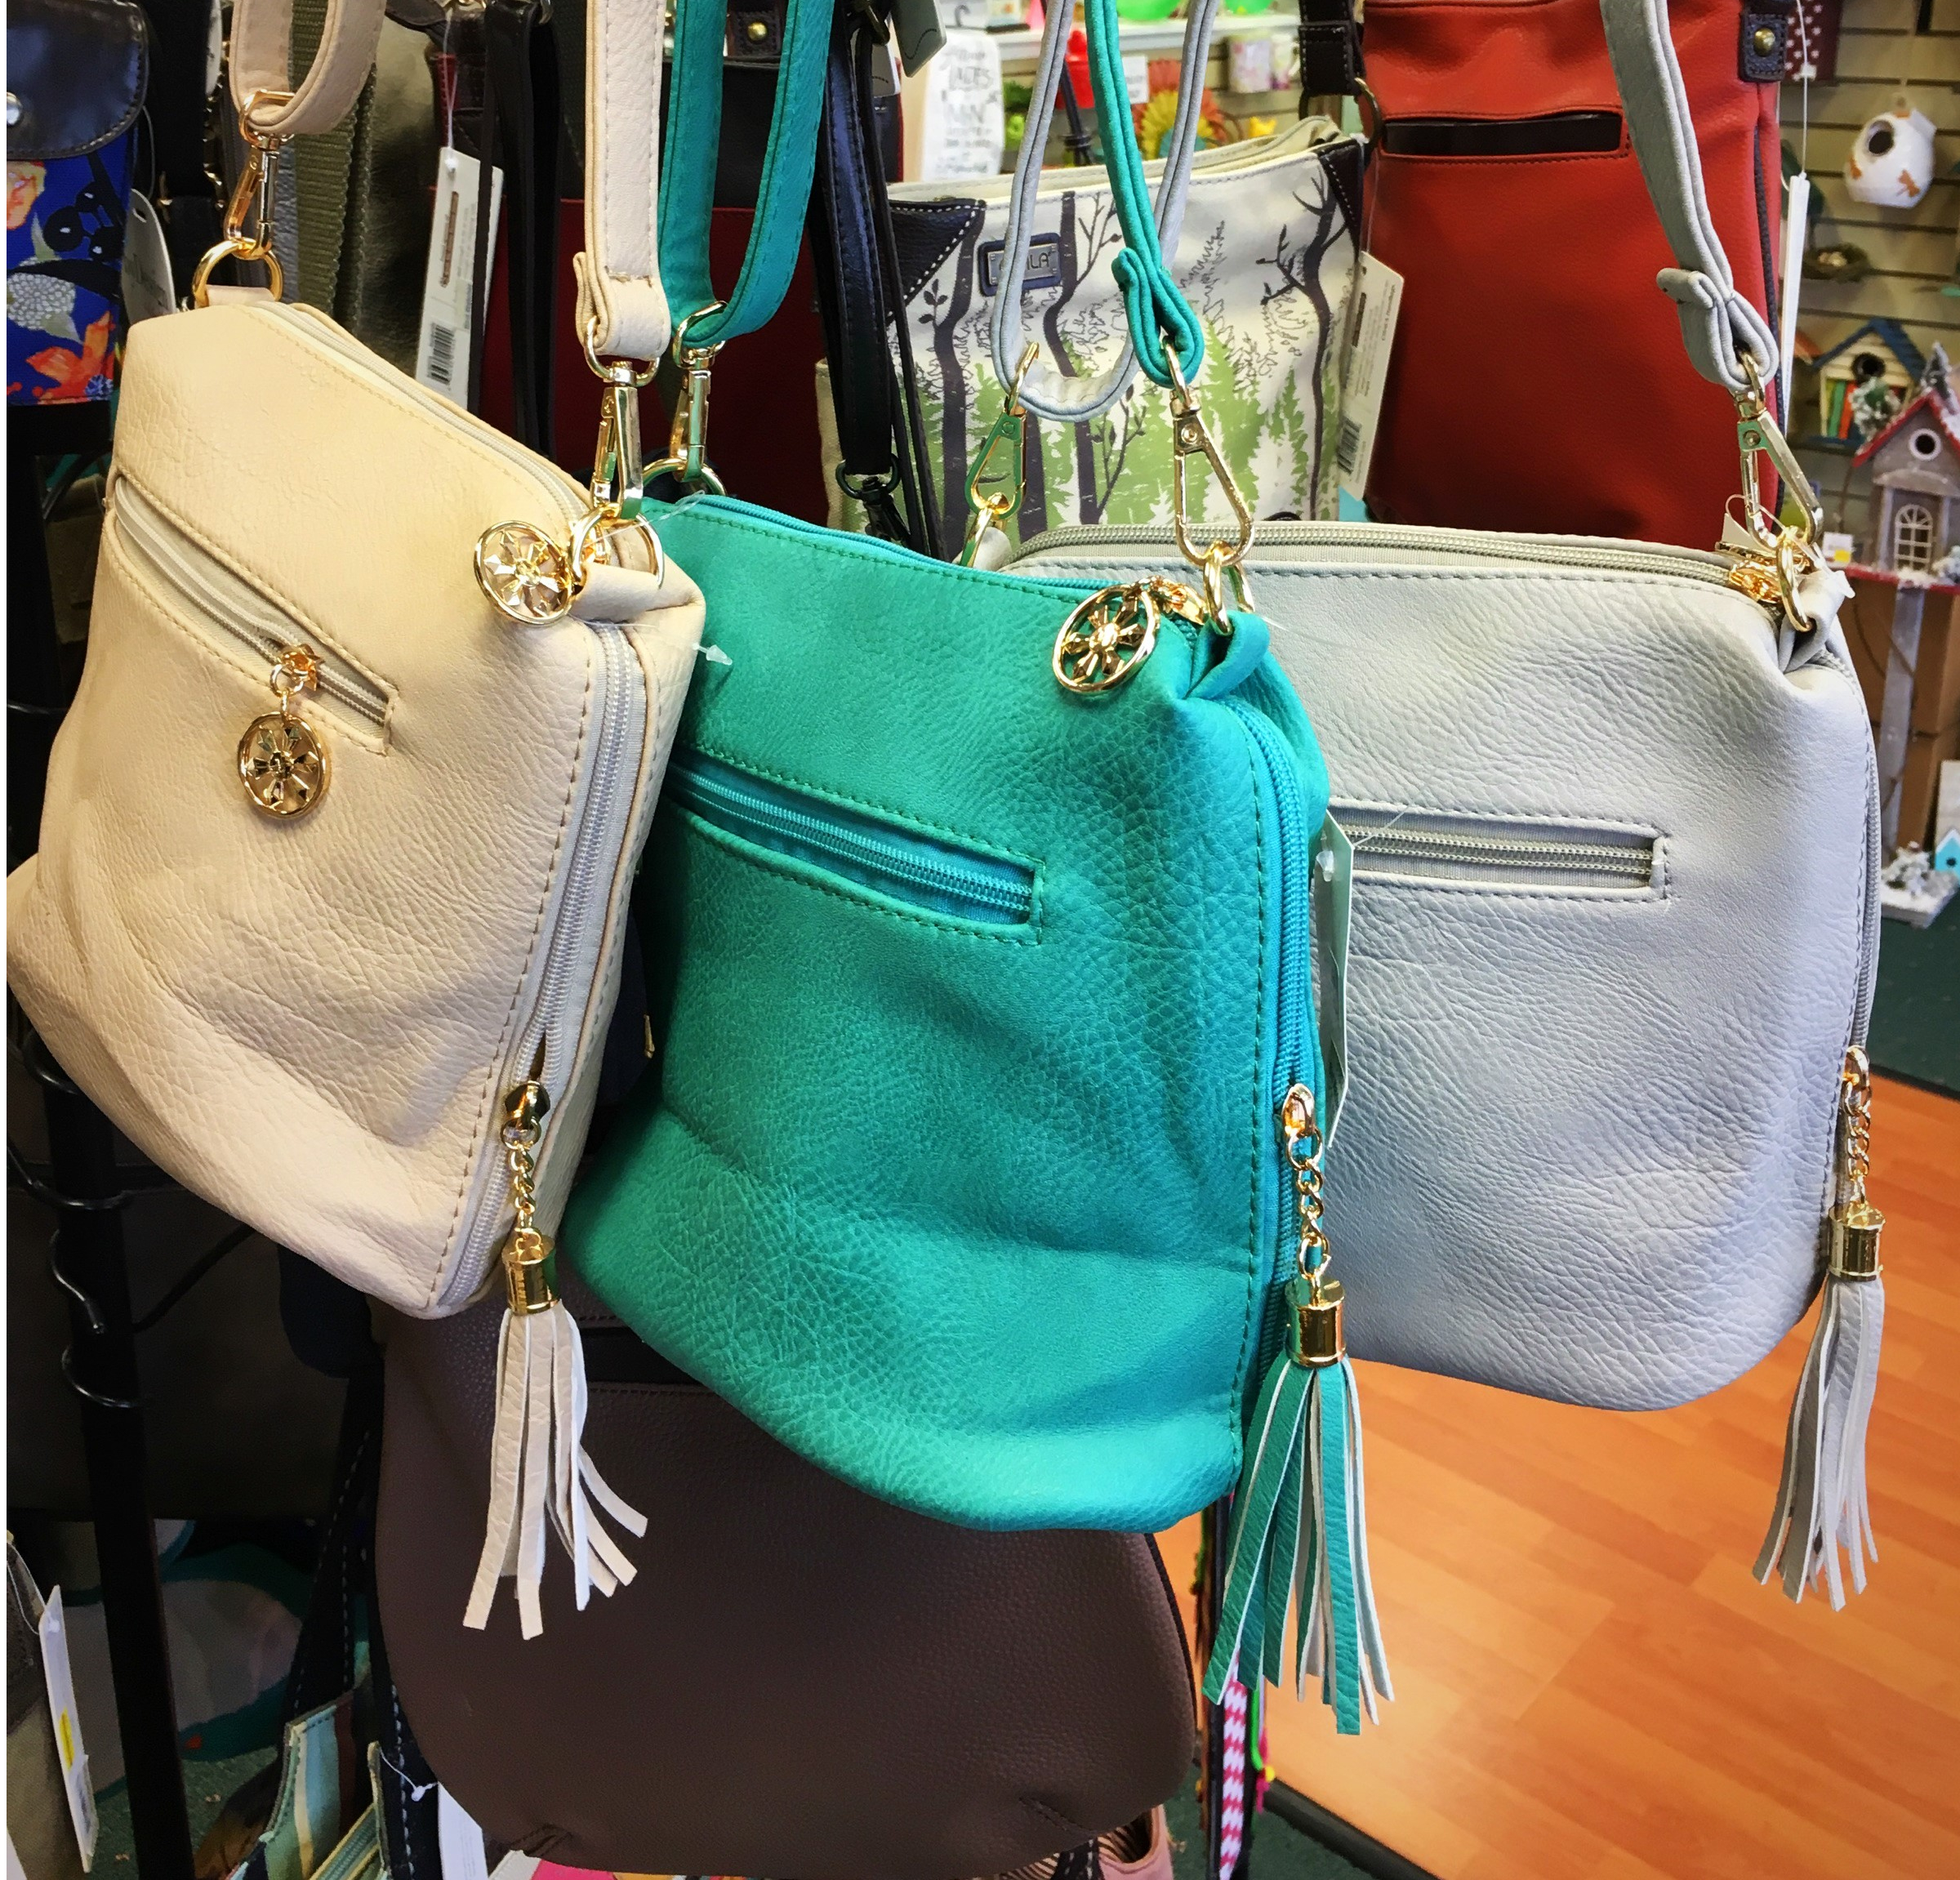 Jewelry, apparel, and bags available at Bird Watcher Supply Company